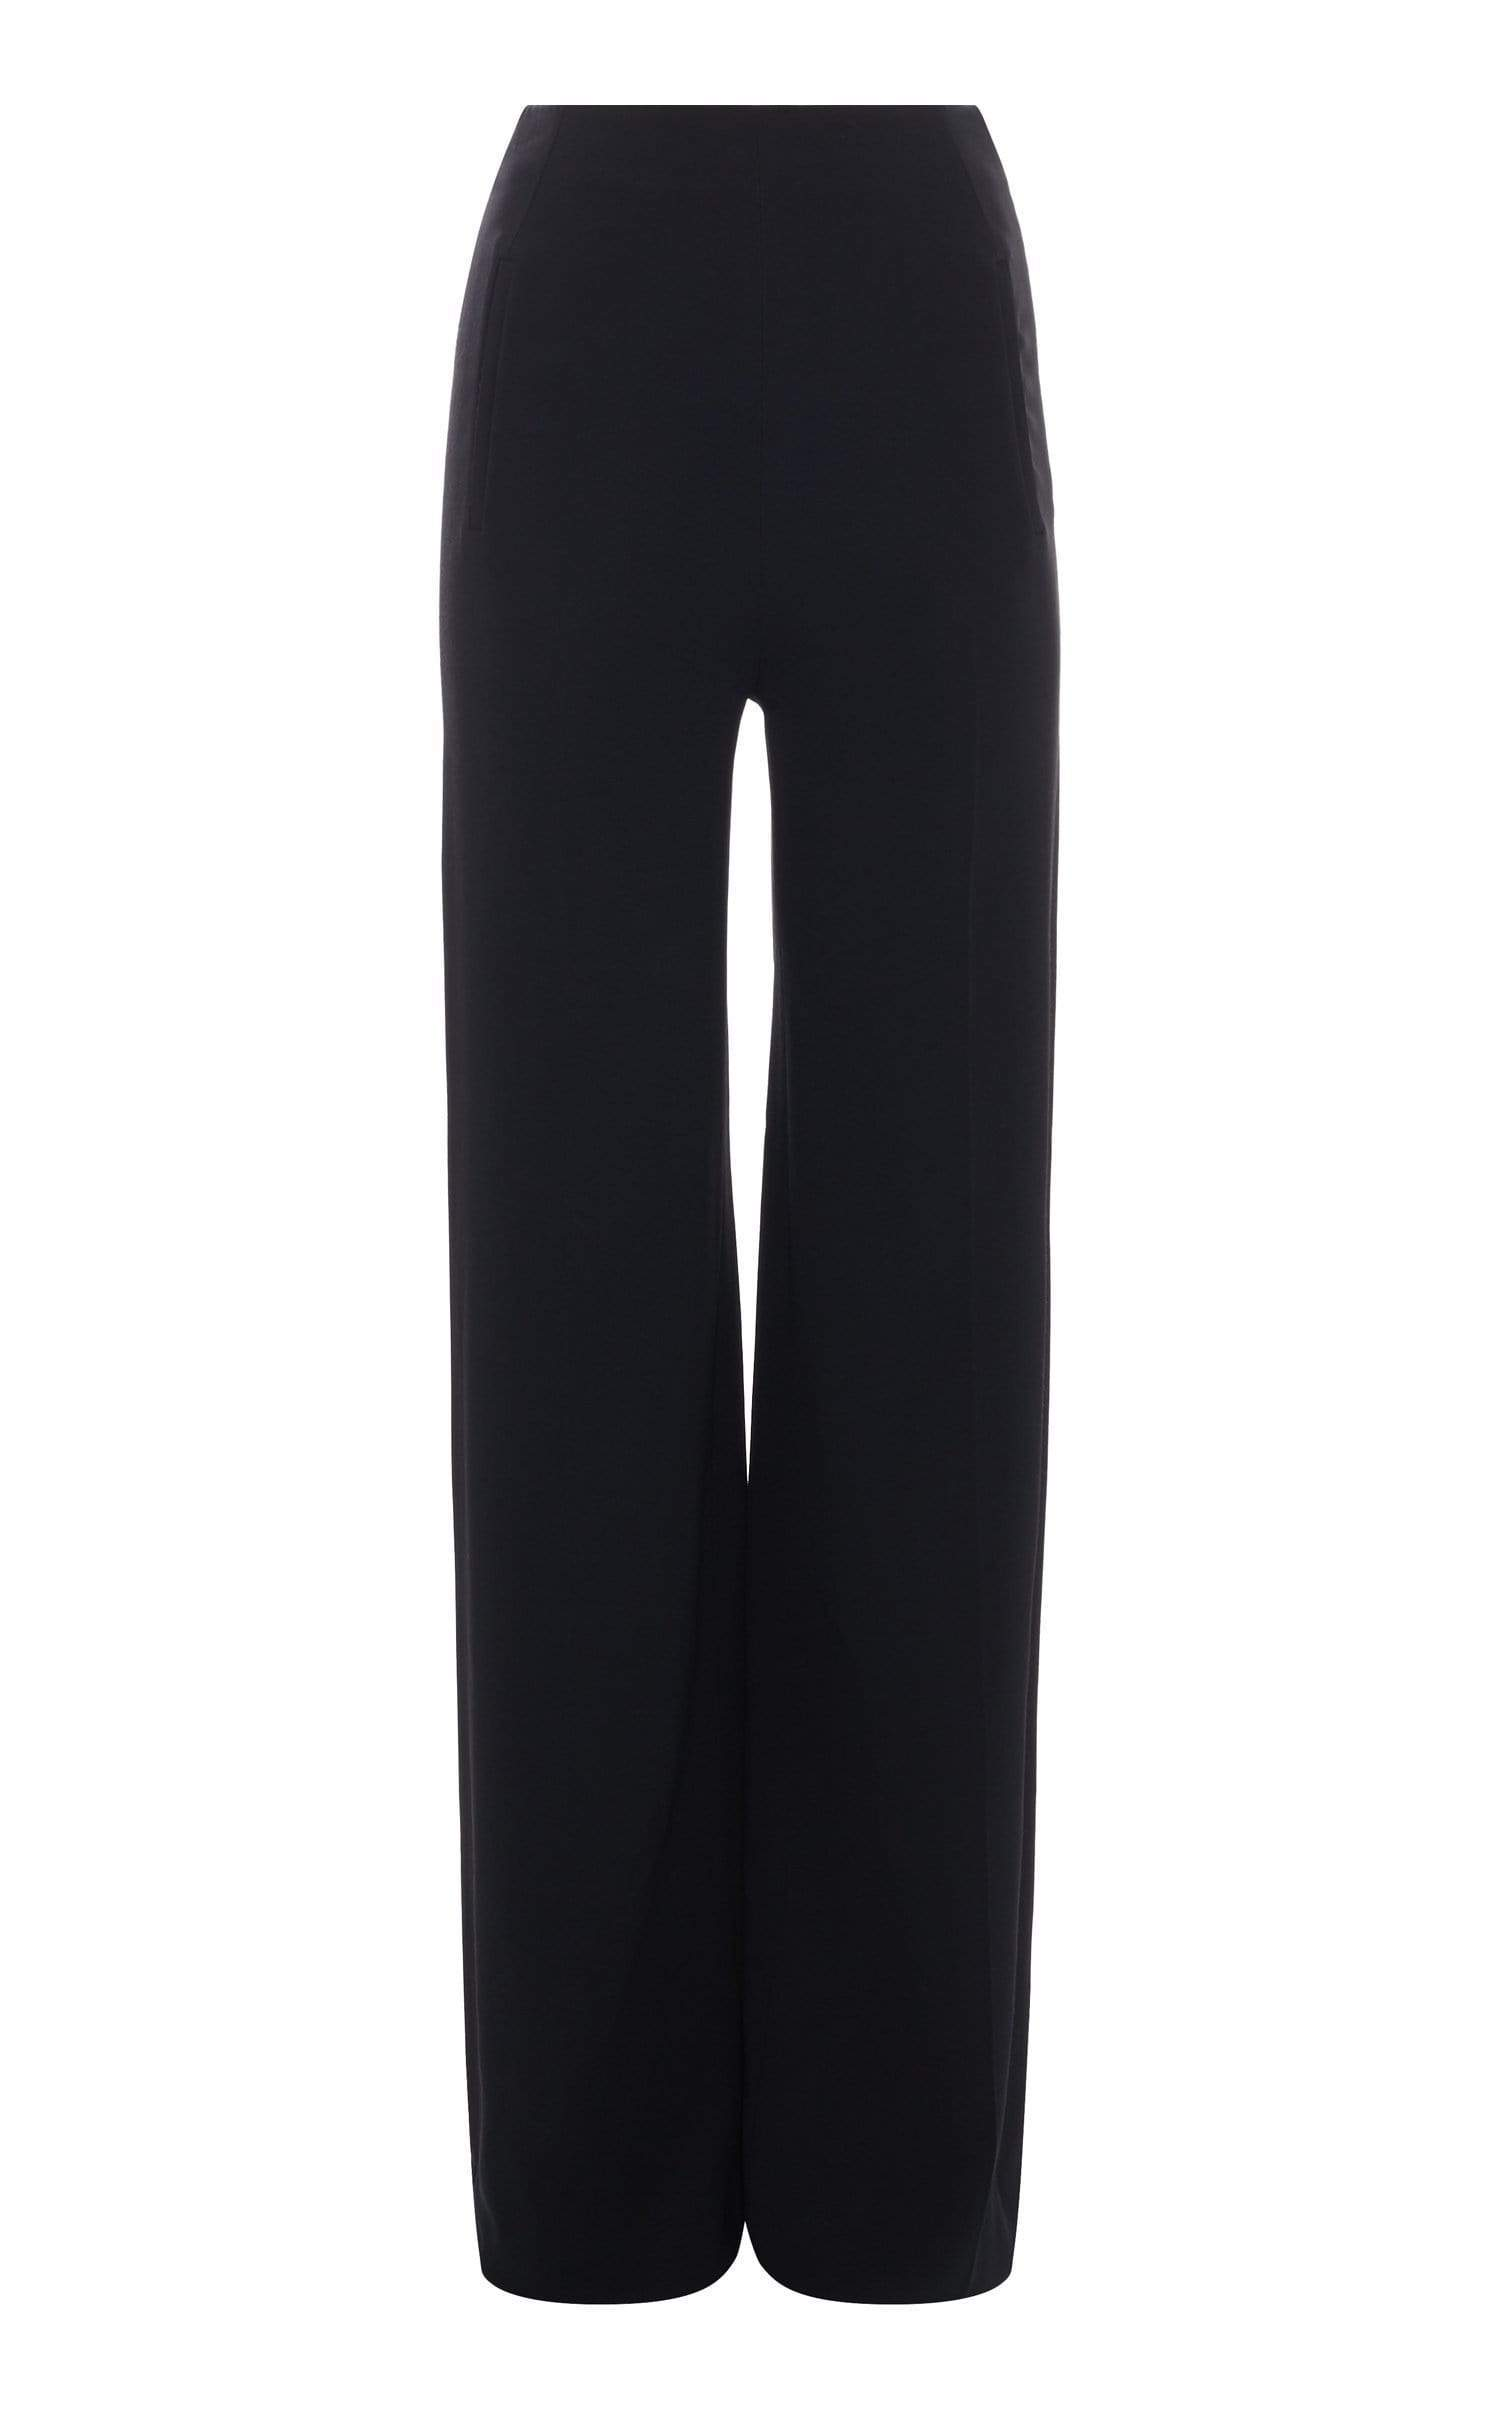 Axon Trouser In Black from Roland Mouret